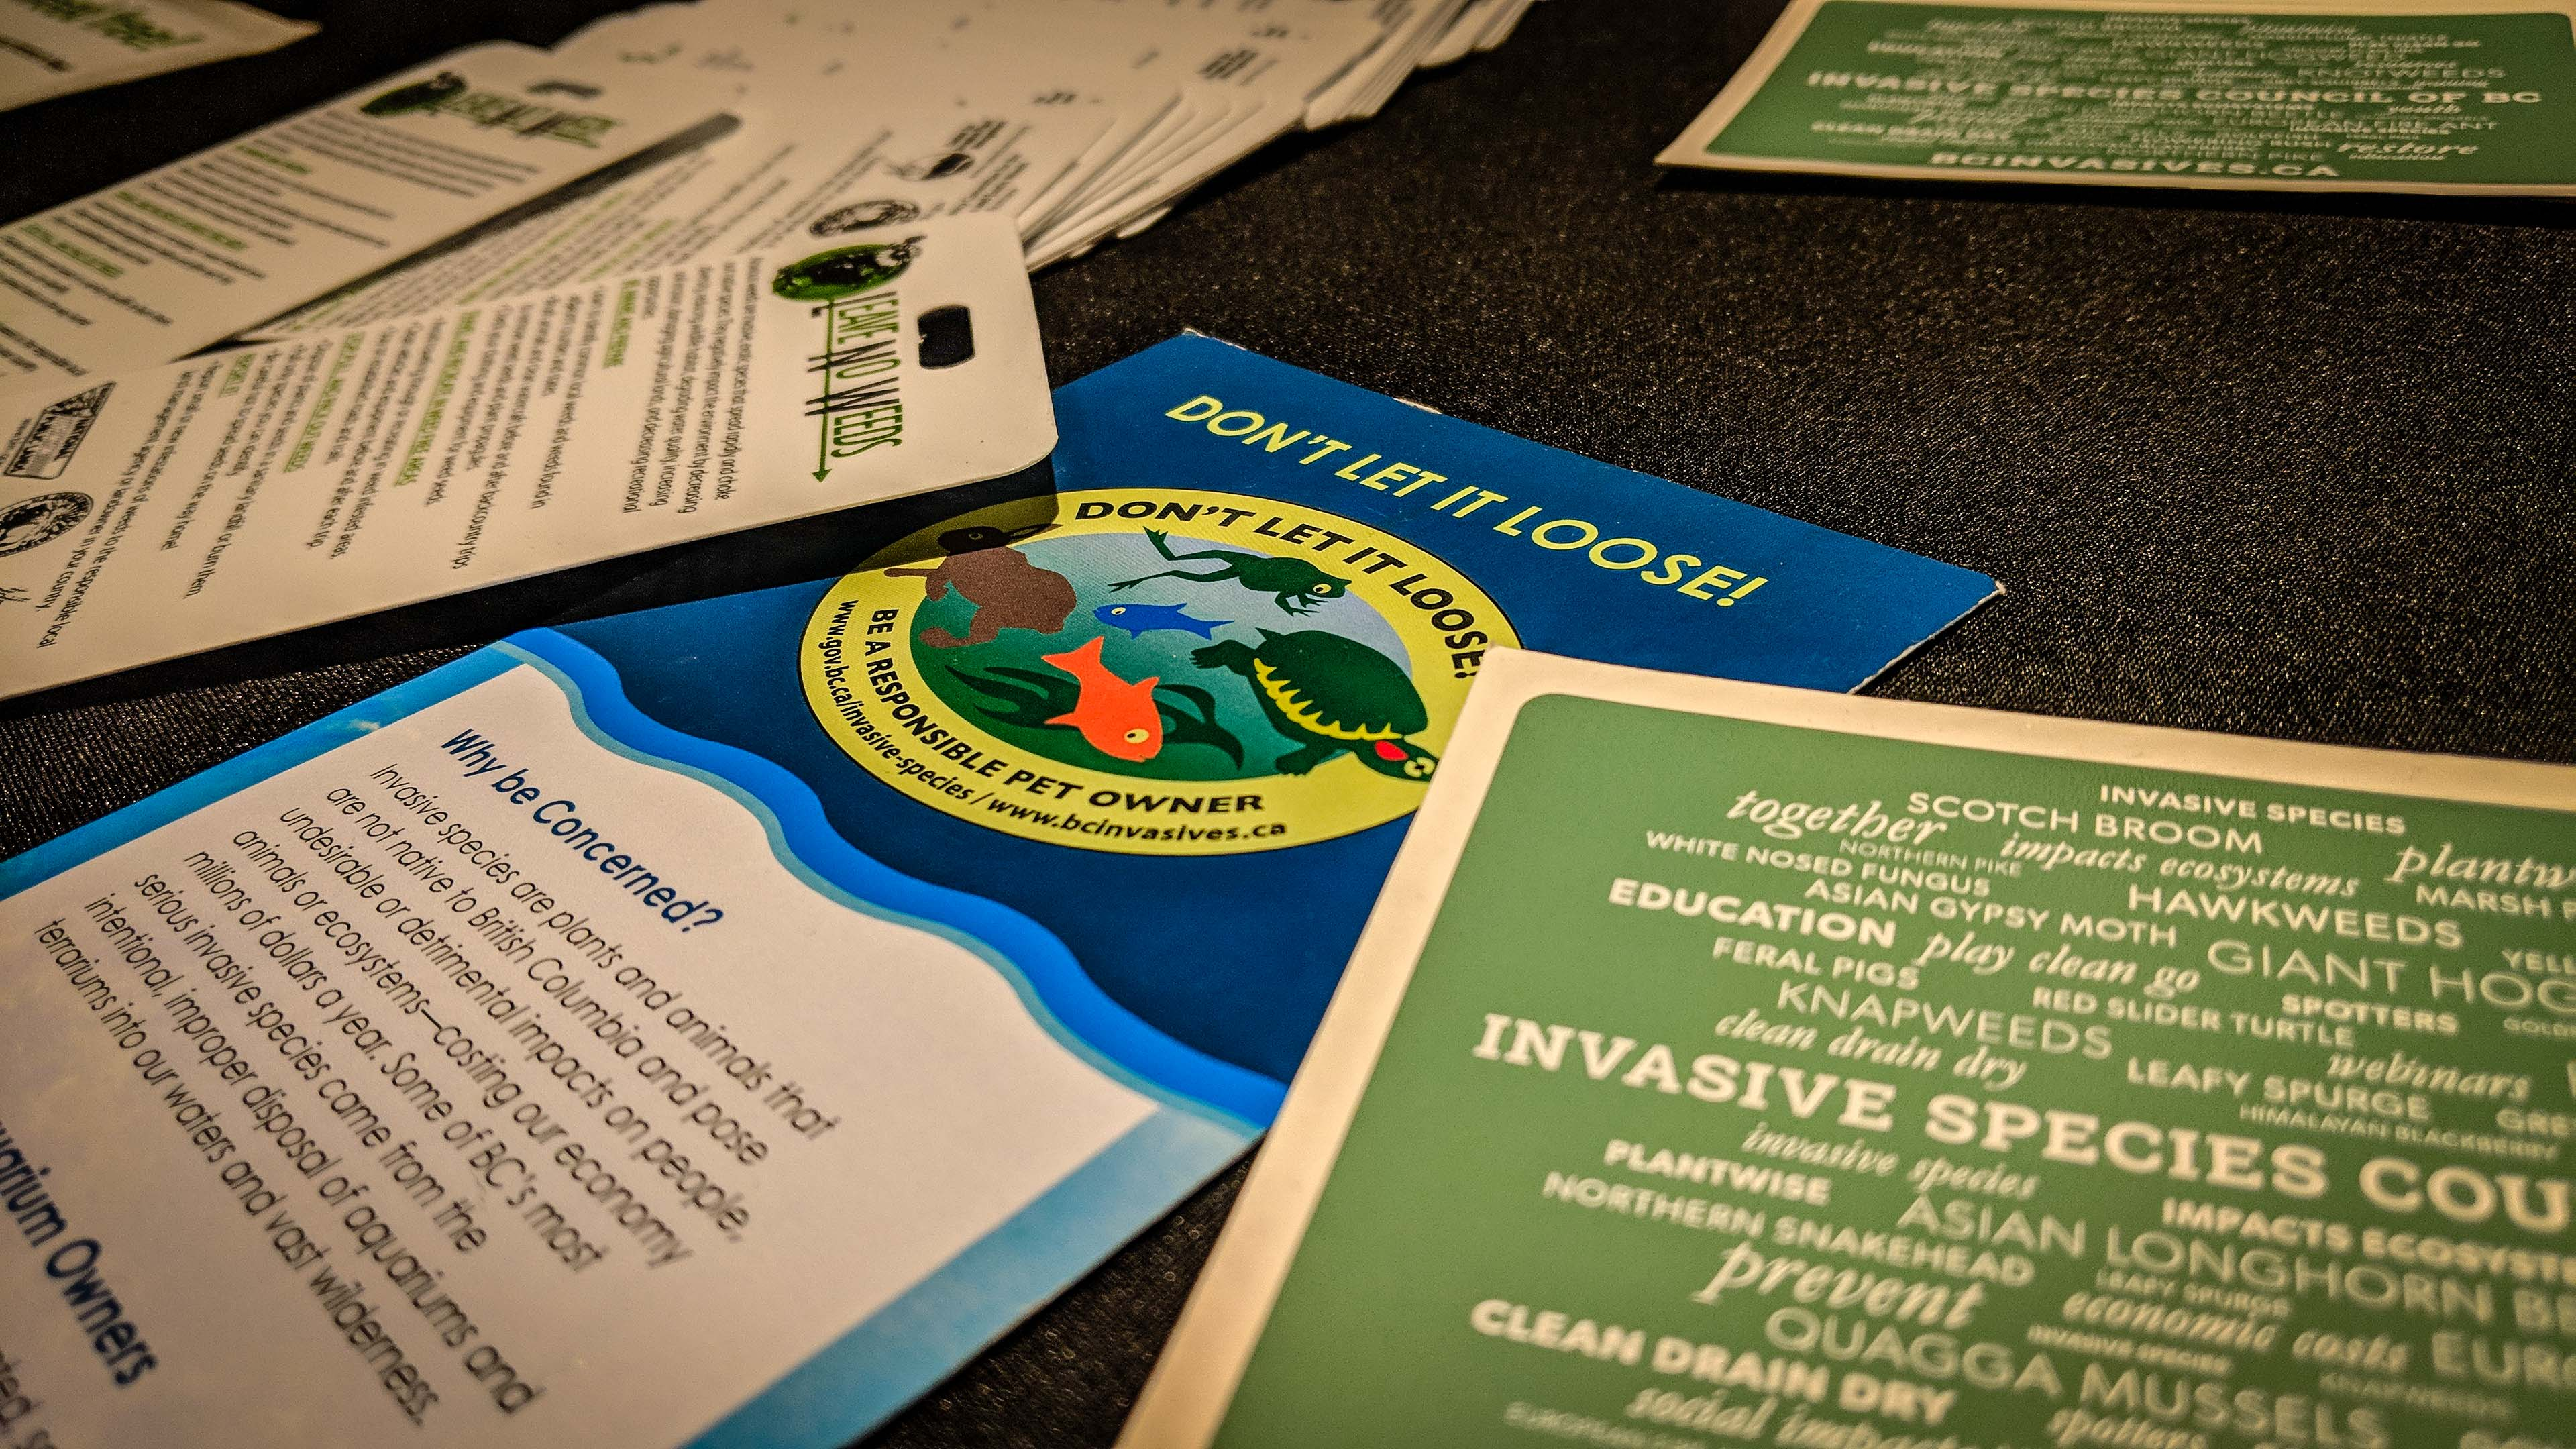 Leaflets warning against the proliferation of invasive species on a table at a pests and pathogens conference in Yellowknife